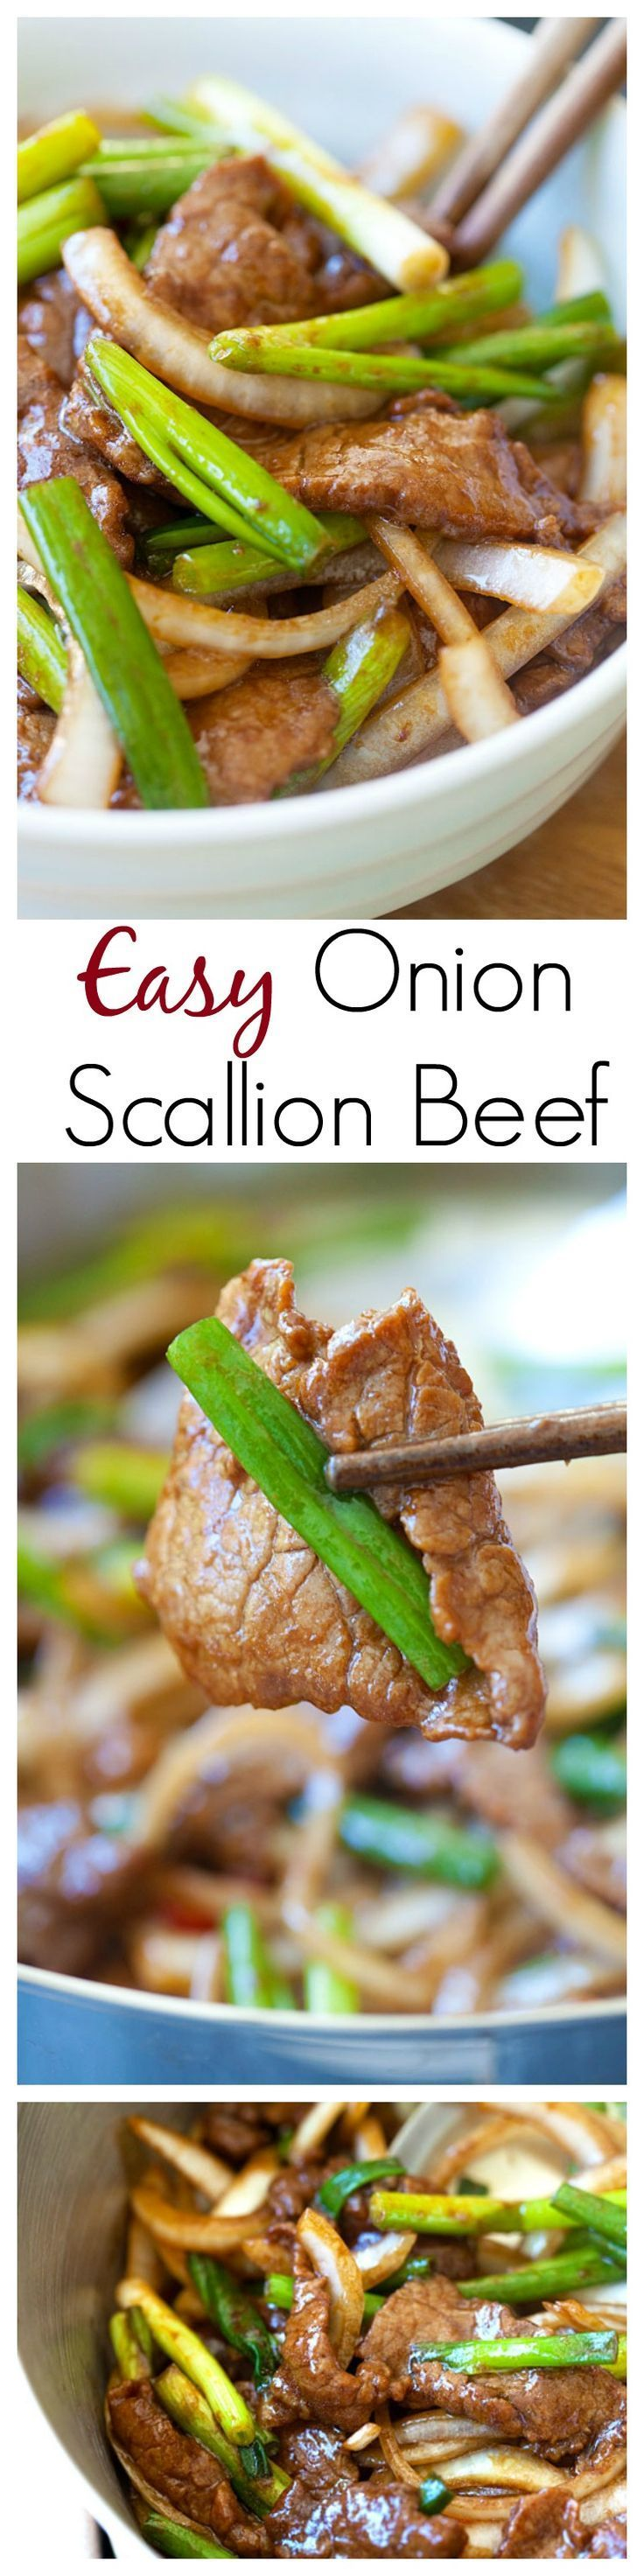 Onion scallion beef – tender juicy beef stir-fry with onions and scallions in Chinese brown sauce. Delicious, easy & takes only 20 mins   http://rasamalaysia.com